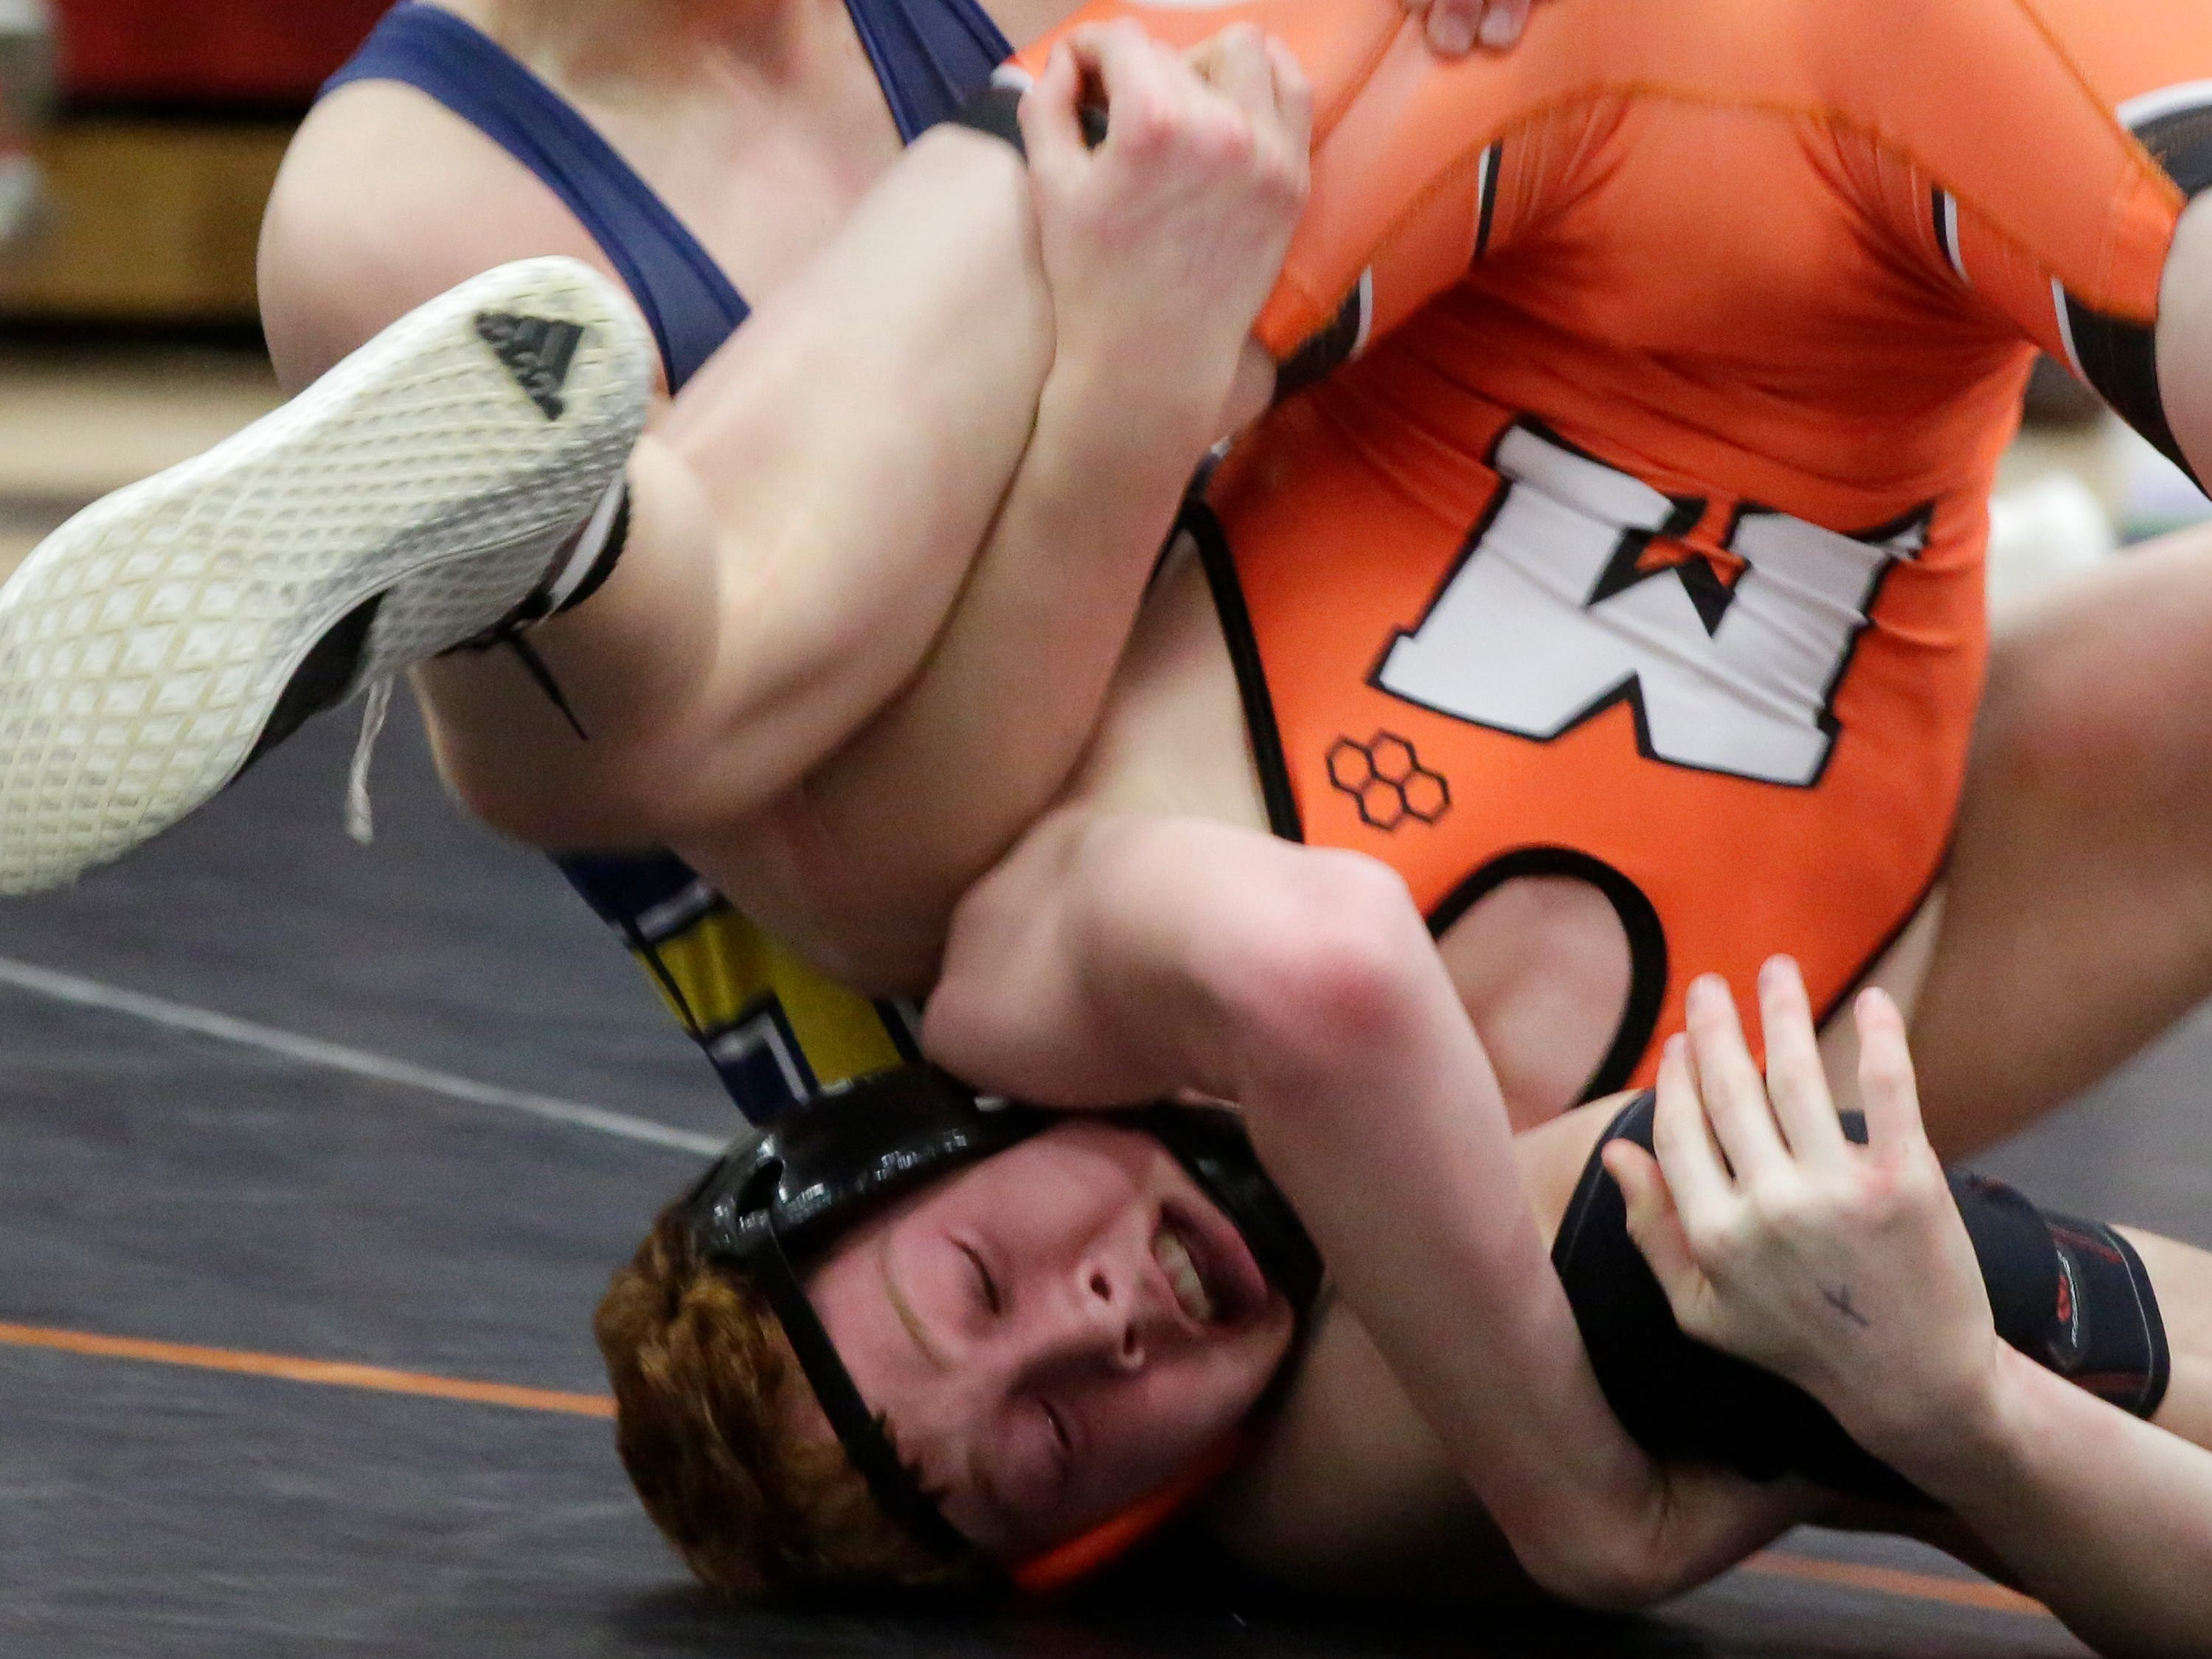 Ozaukee's Travis Simpson, top, wrestles Mishicot's Brant Cracraft in a 132-pound match, Saturday, February 2, 2019, in Oostburg, Wis.